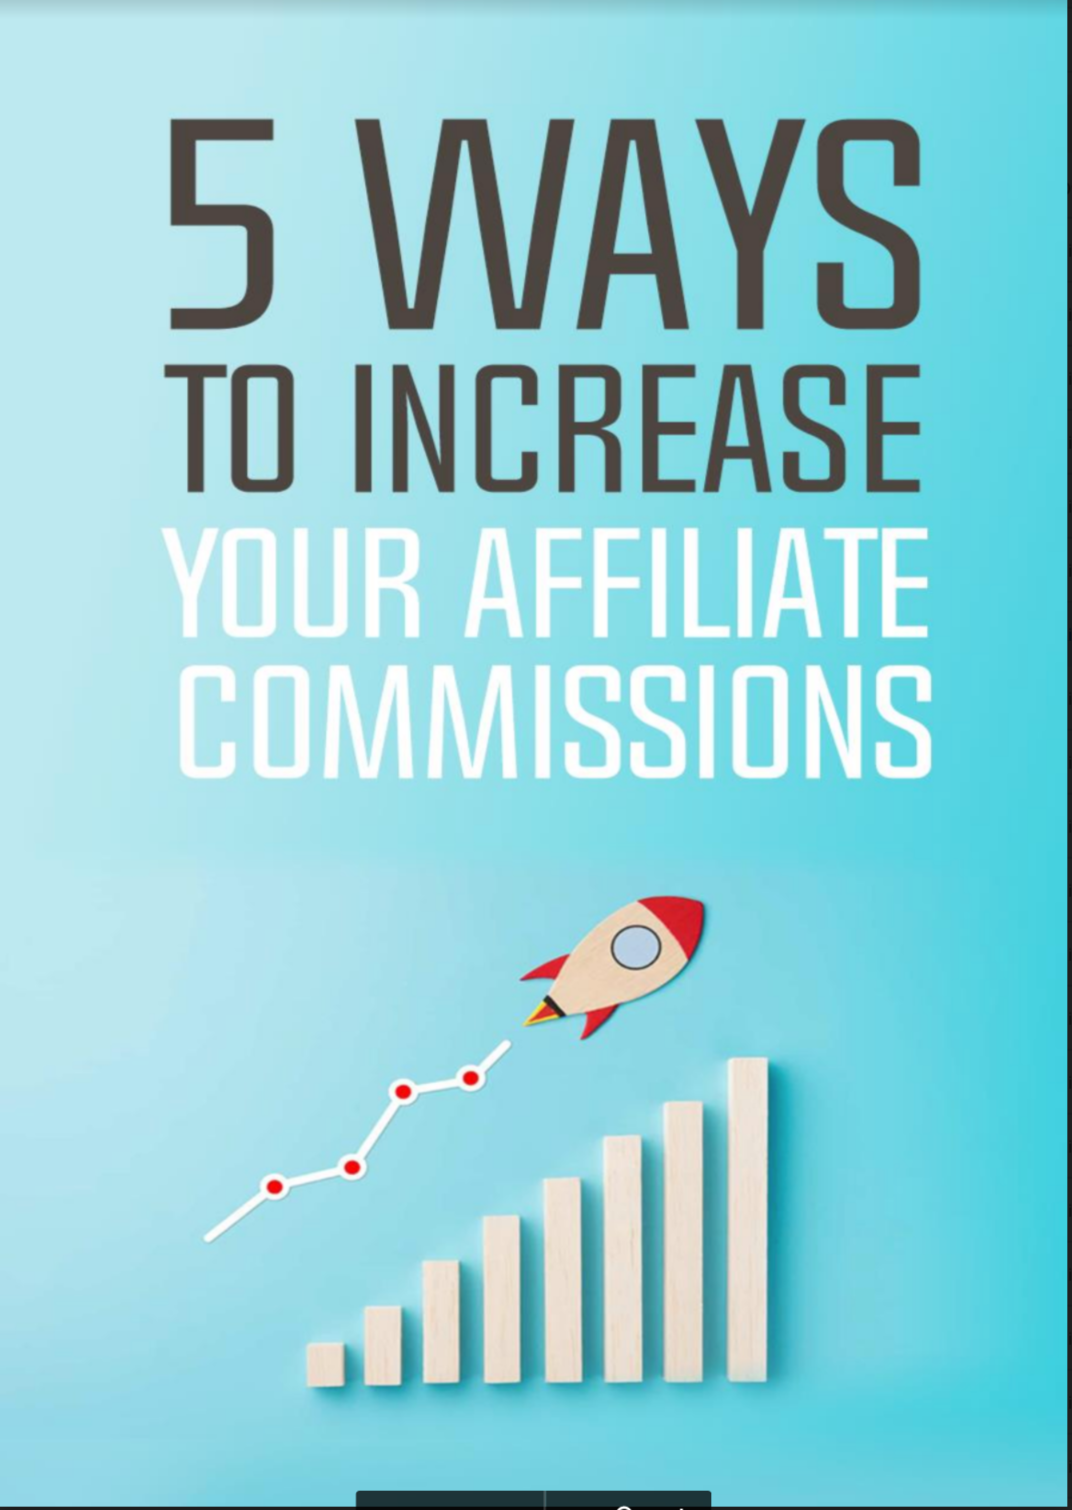 5 ways to increase your affiliate commisions